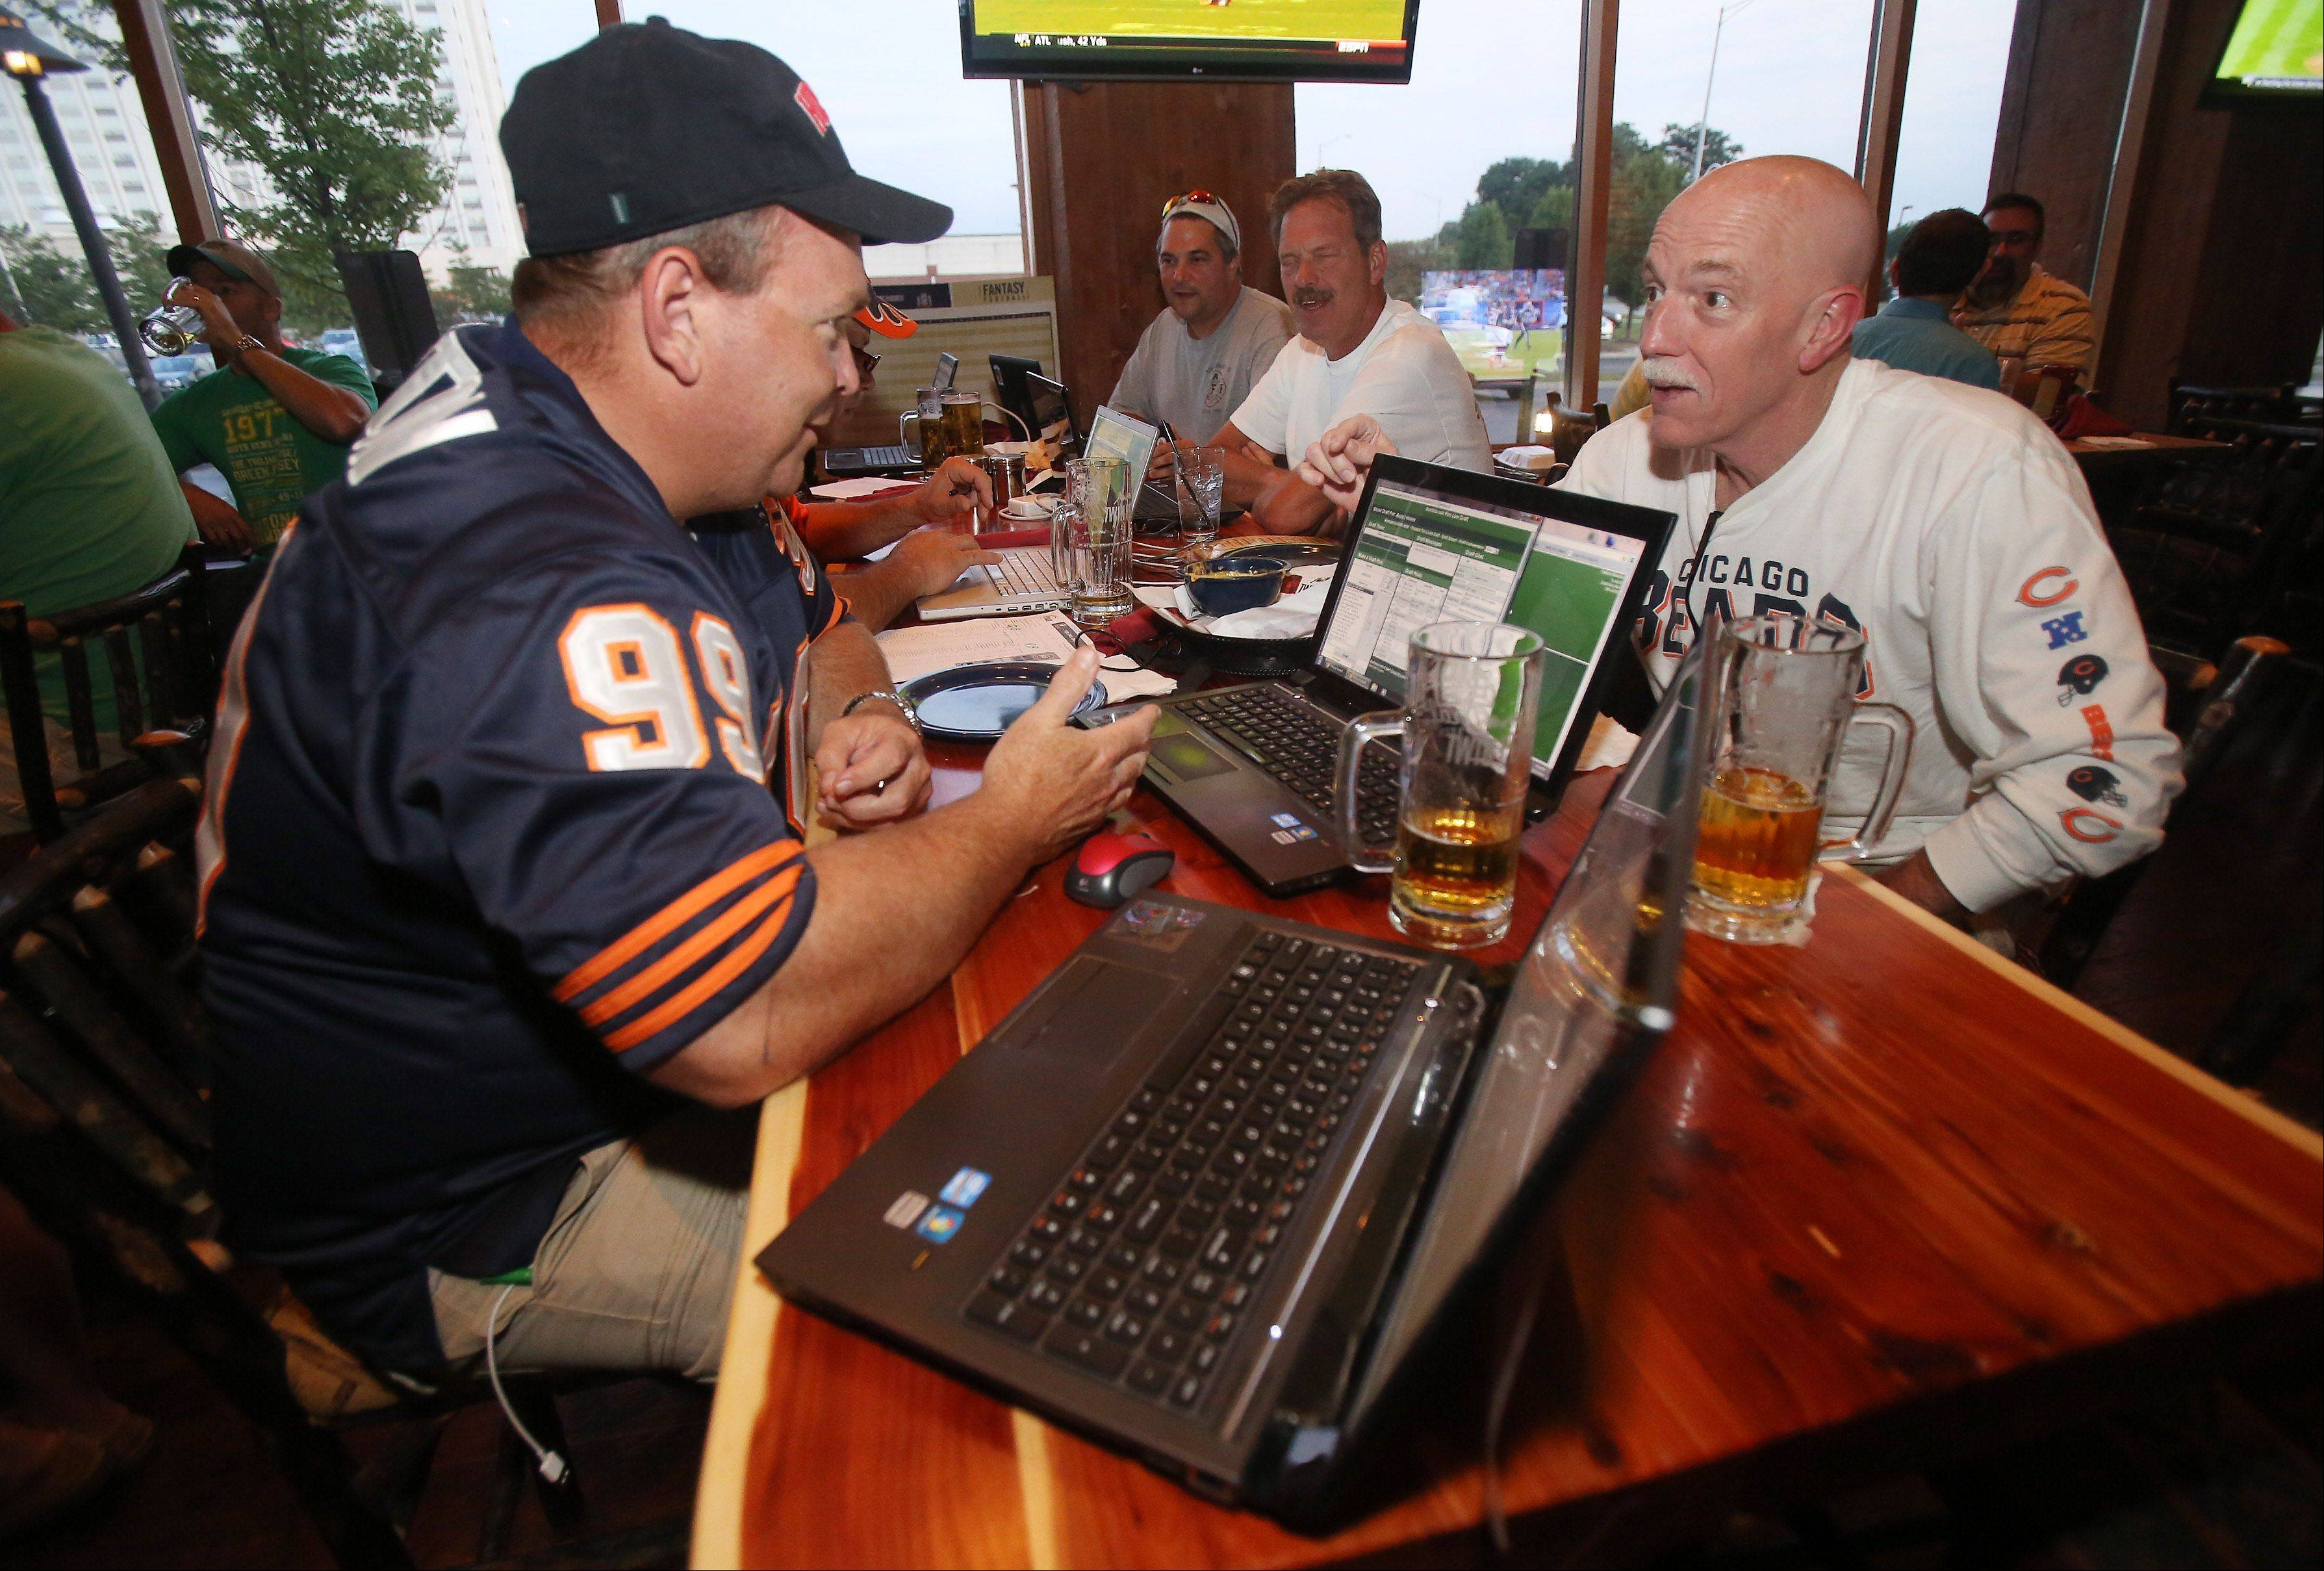 Northbrook firefighter Ken Morton, left, and retired firefighter Jim Lee work on their fantasy football teams with other Northbrook firefighters as they watch the Chicago Bears football game at Twin Peaks in Wheeling.